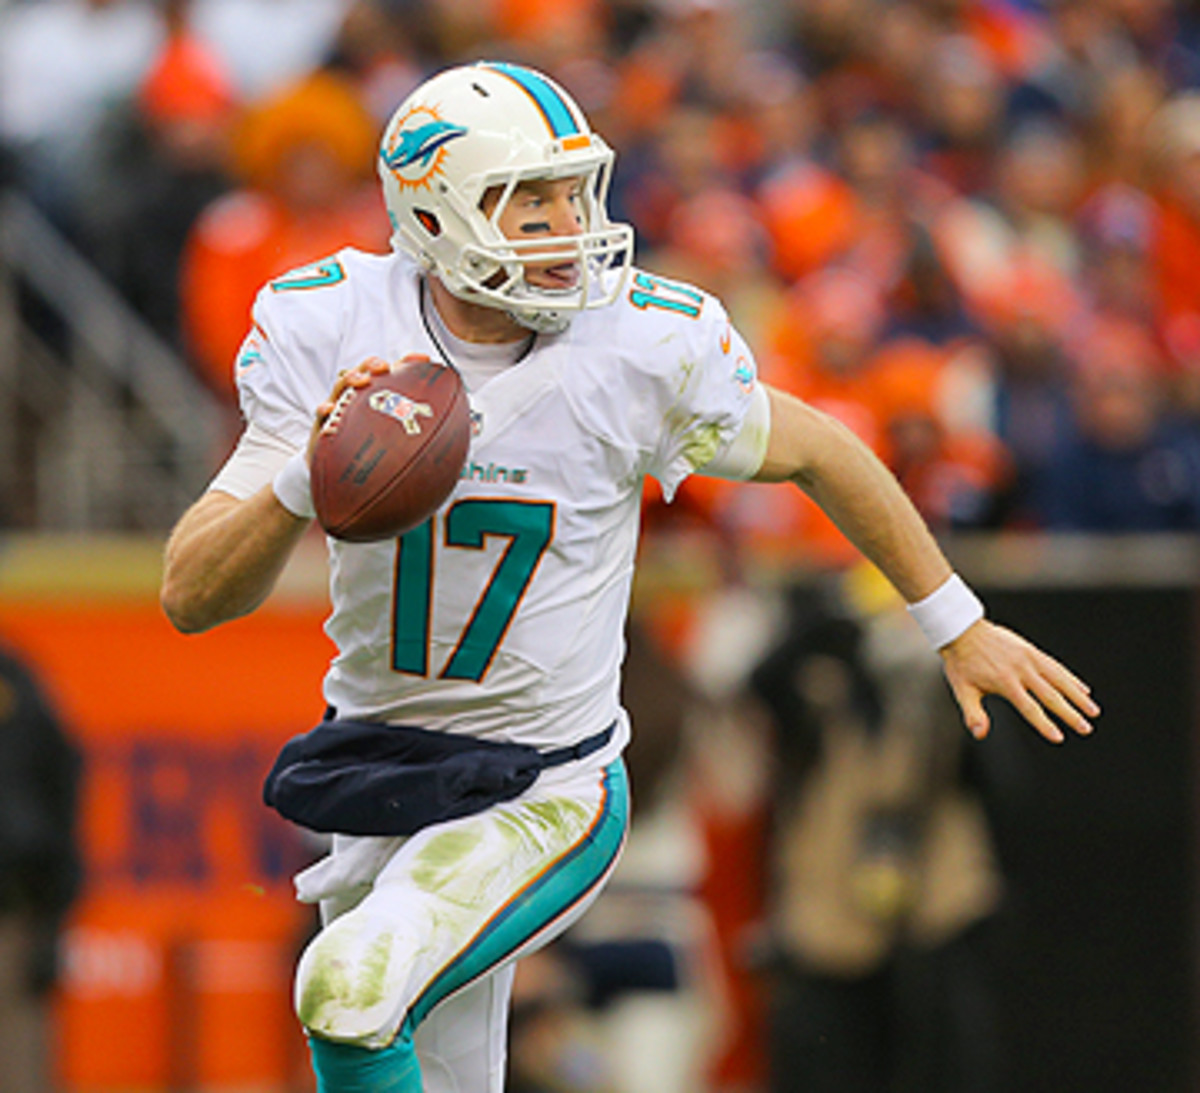 Tannehill's play in a new system has kept Miami in the playoff hunt. (Justin Edmonds/Getty Images)